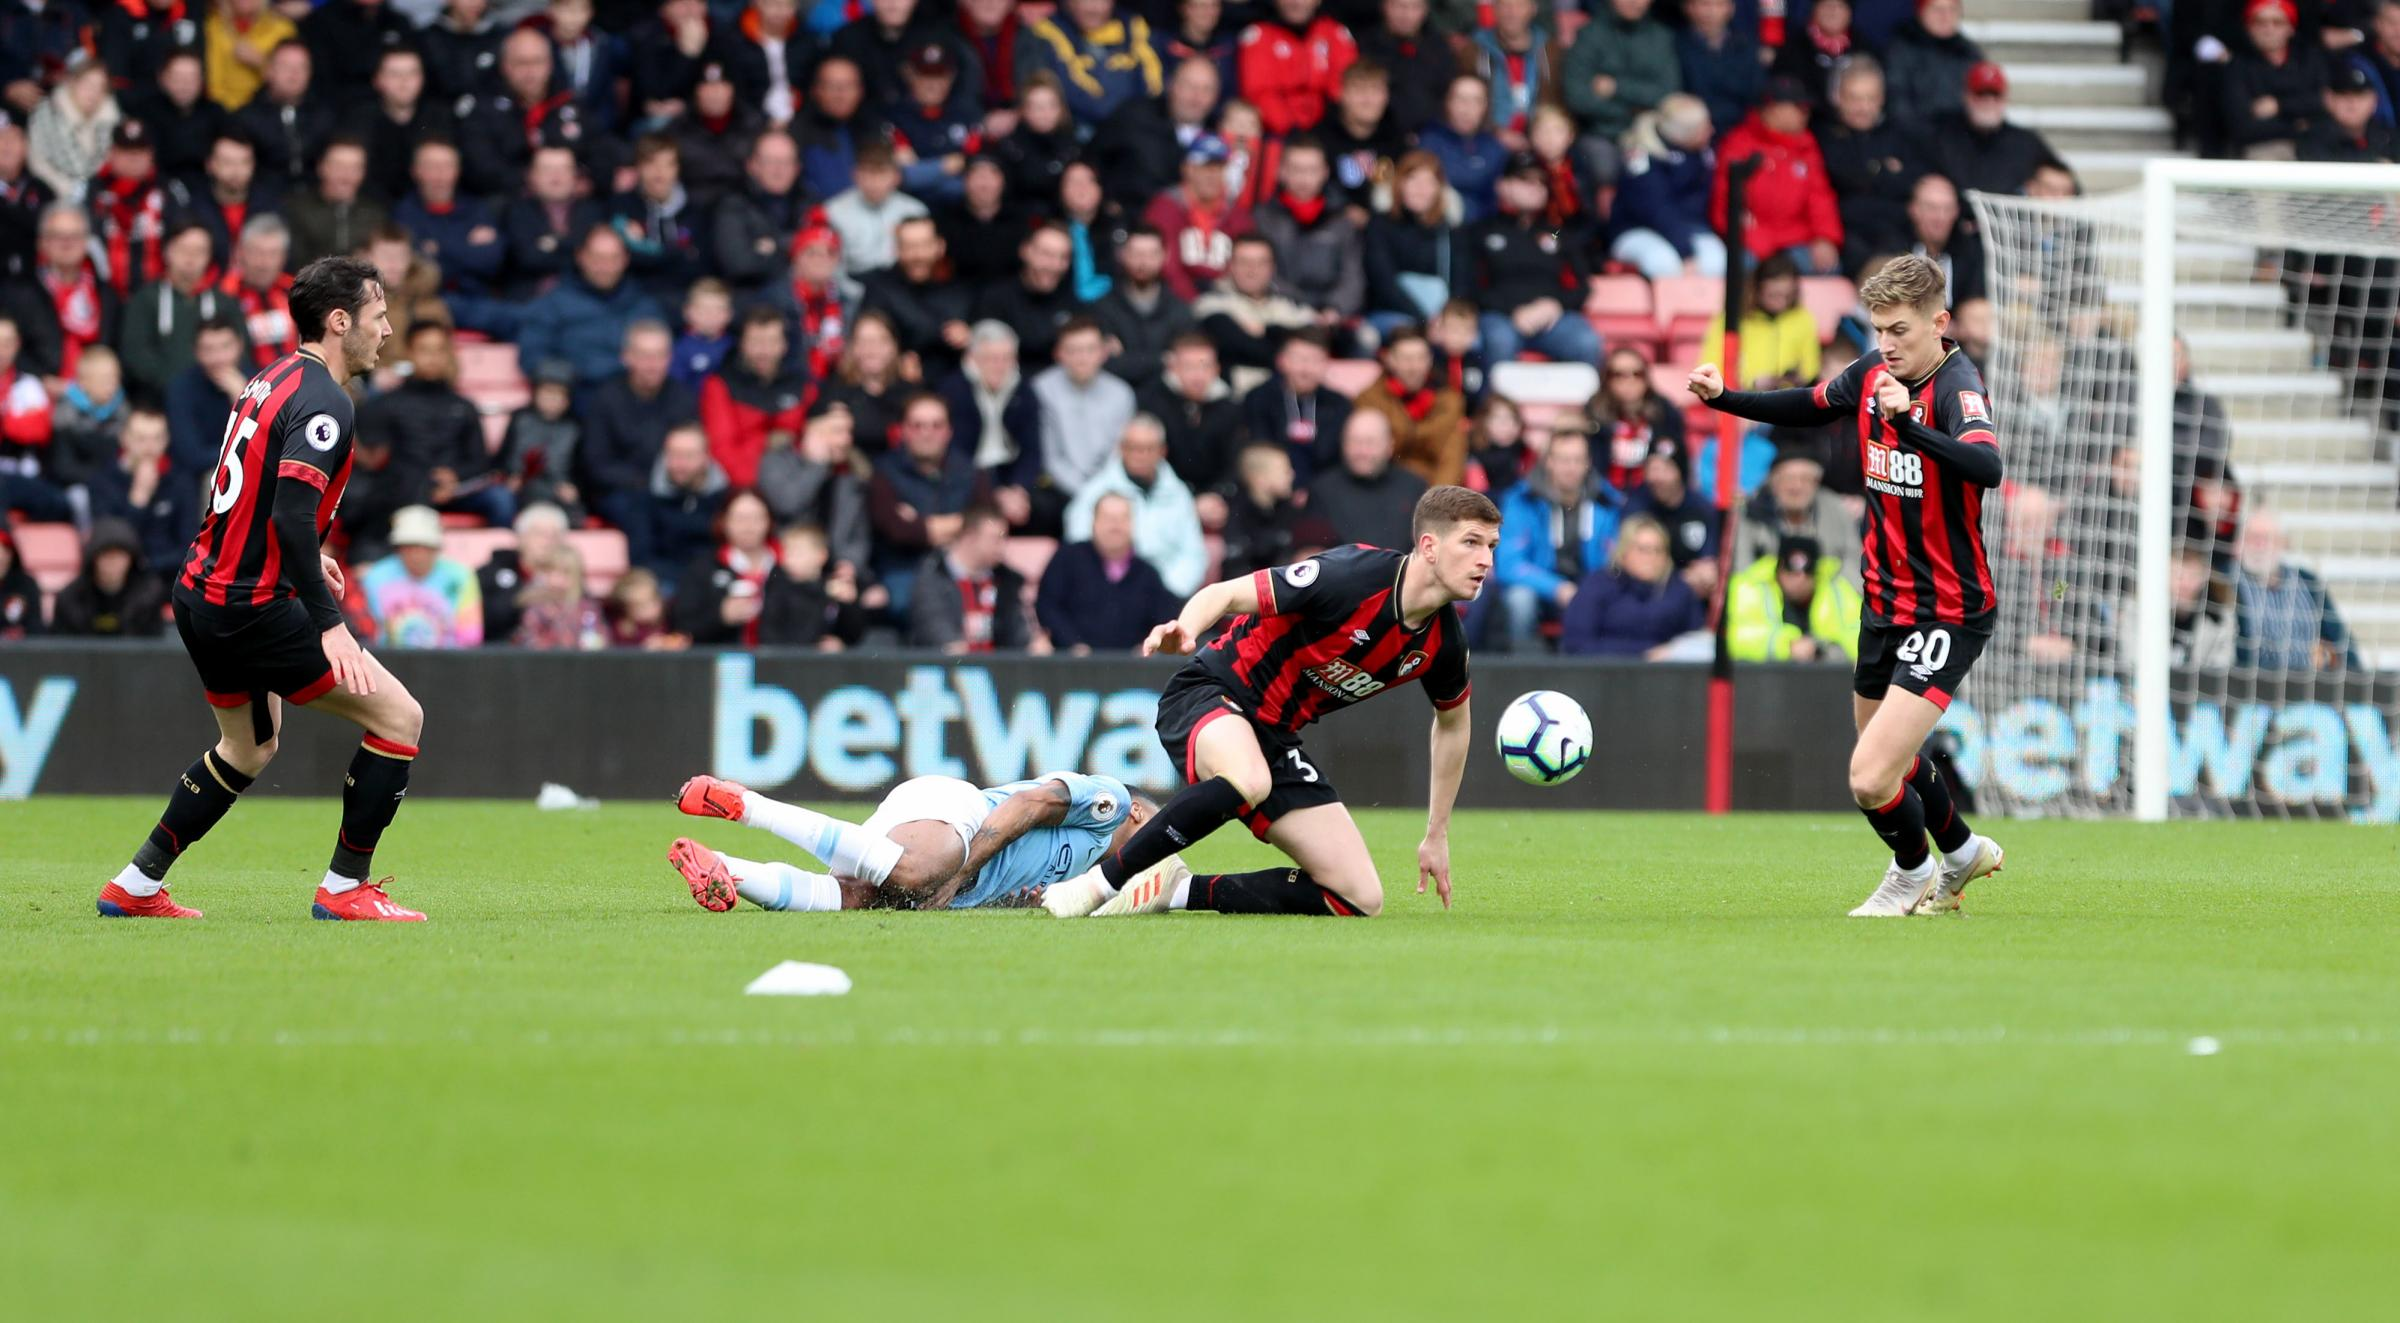 AFC Bournemouth v Manchester City at the Vitality Stadium in Bournemouth. .Chris Mepham. ..